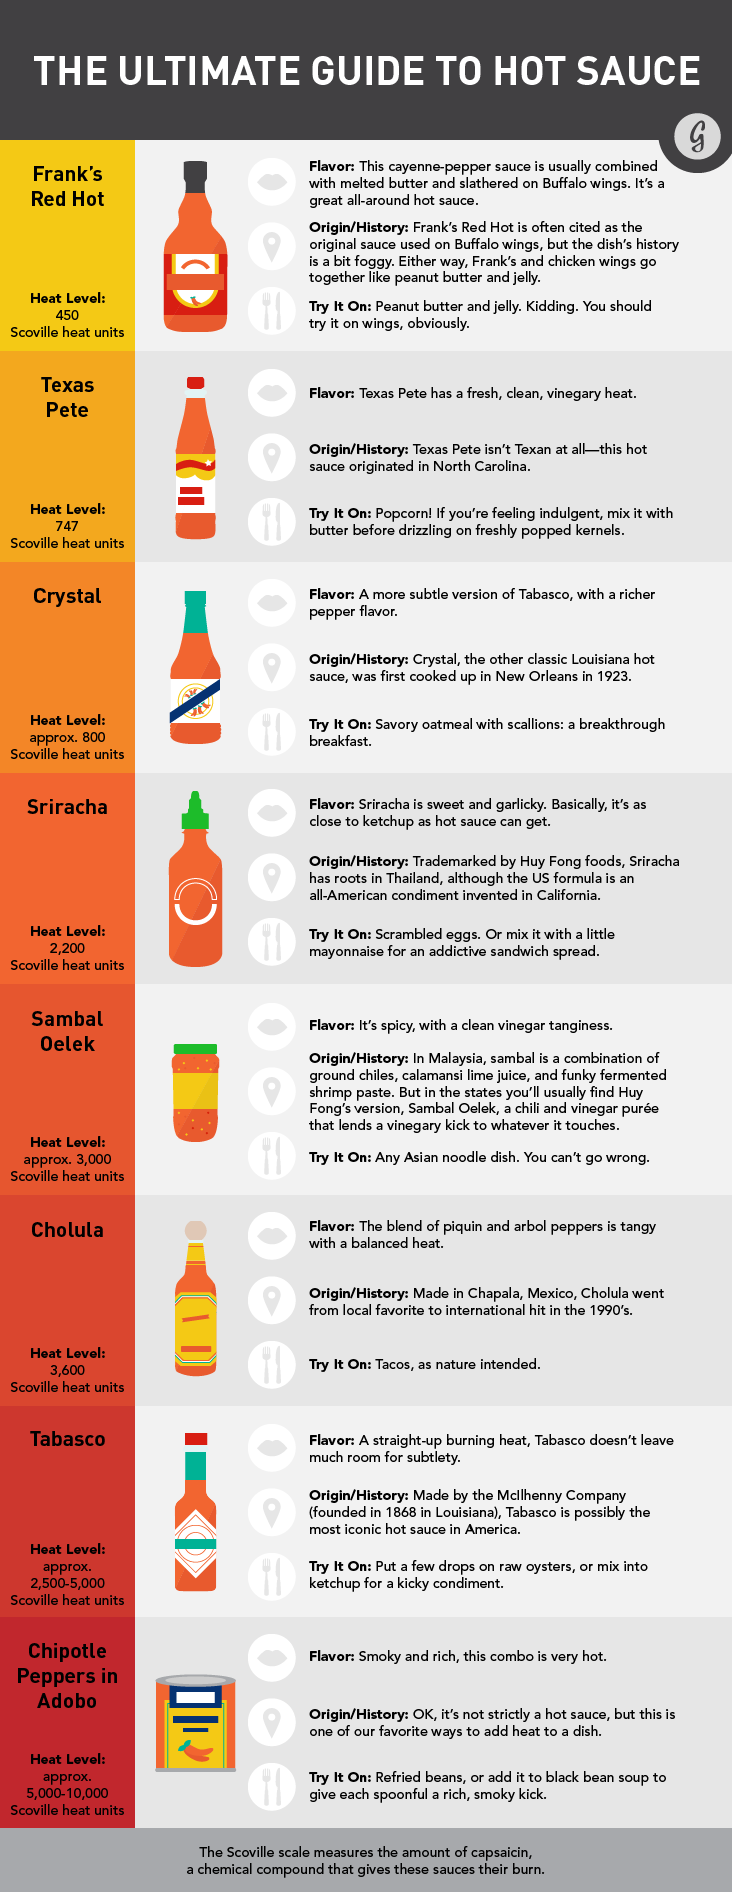 The Ultimate Guide to Hot Sauce